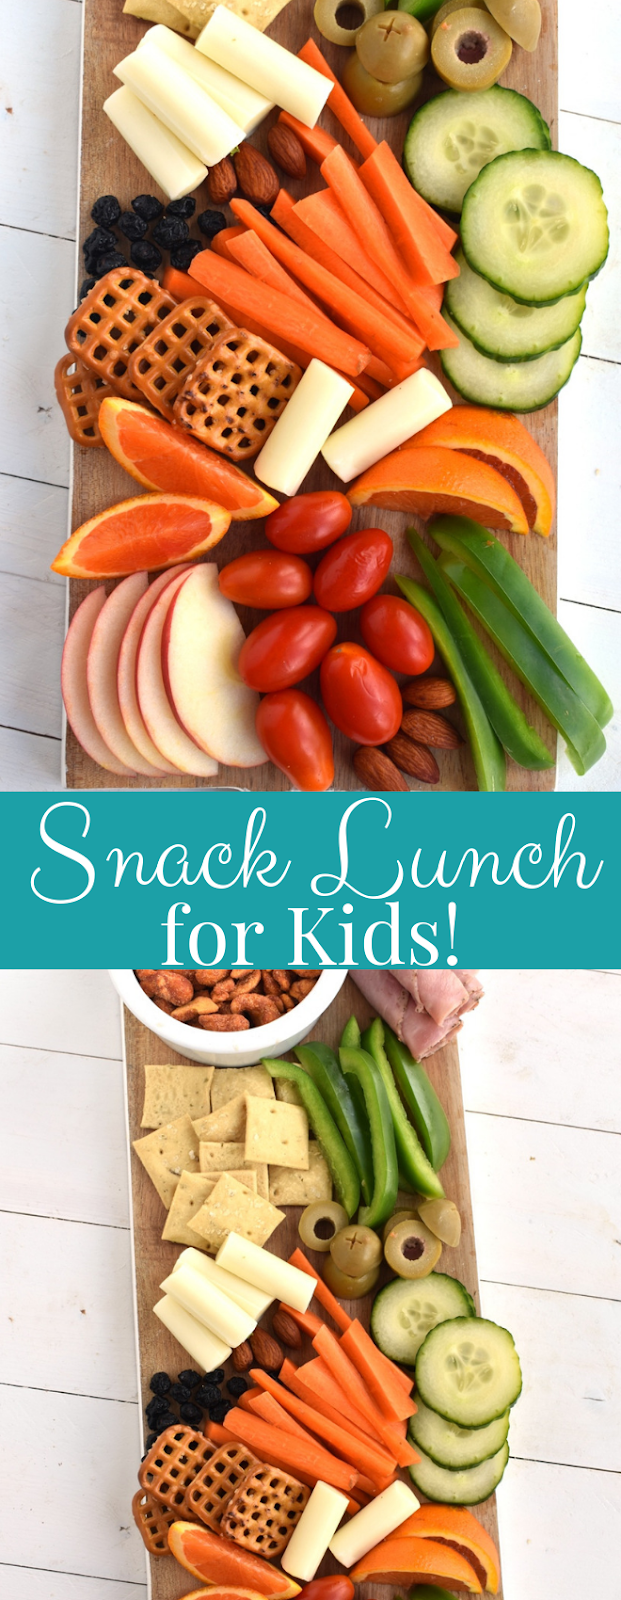 How to put together a snack lunch for kids